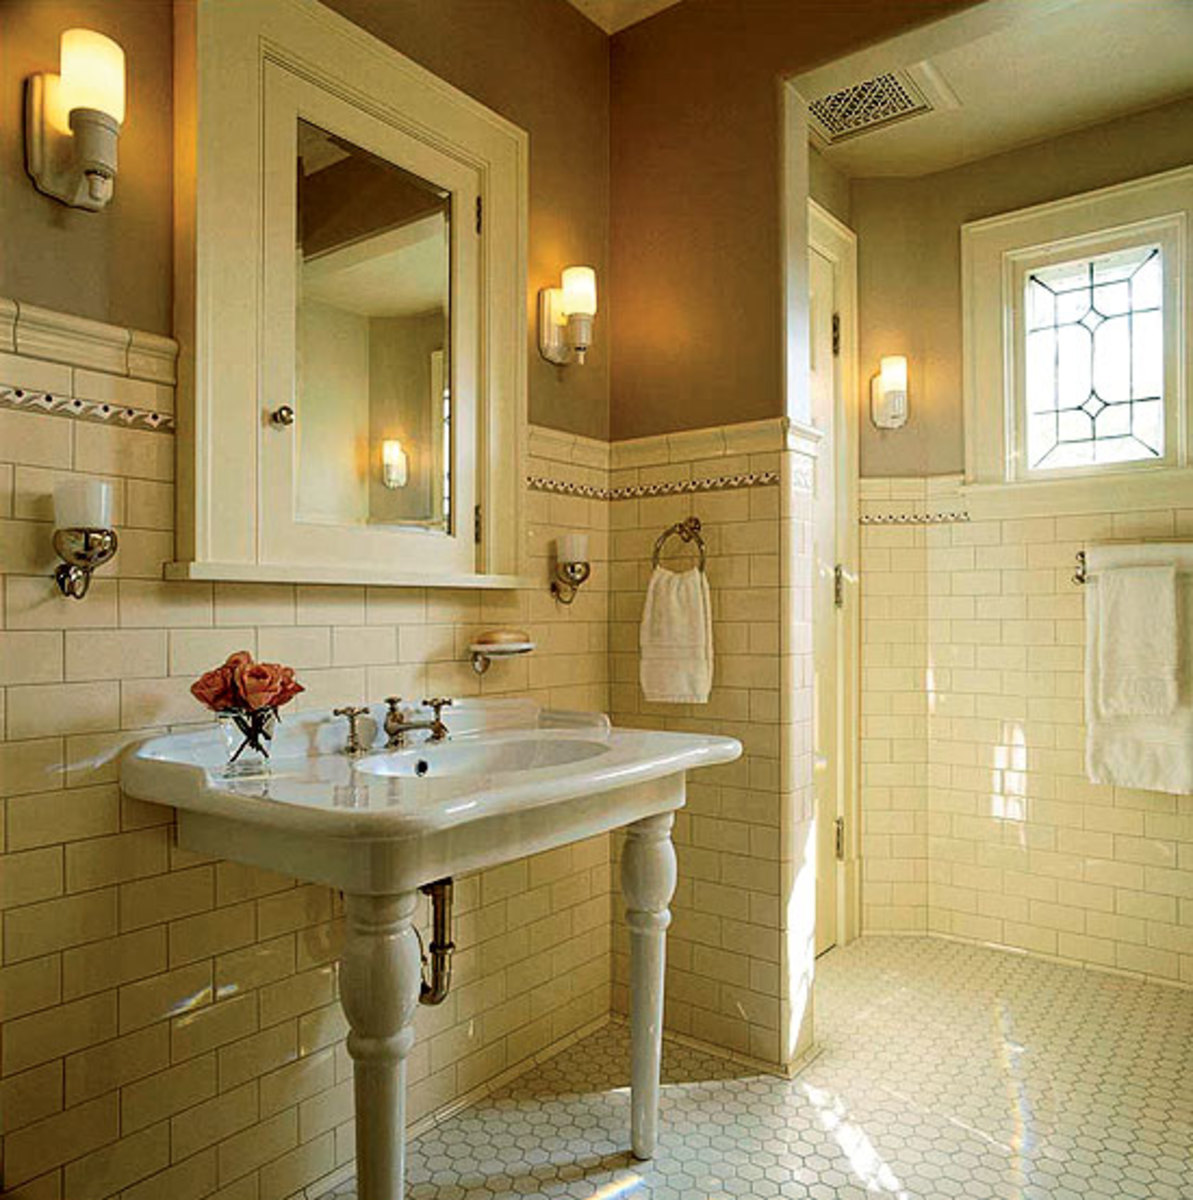 1910 gem of a montlake craftsman in seattle wa for Bathroom ideas 1920 s